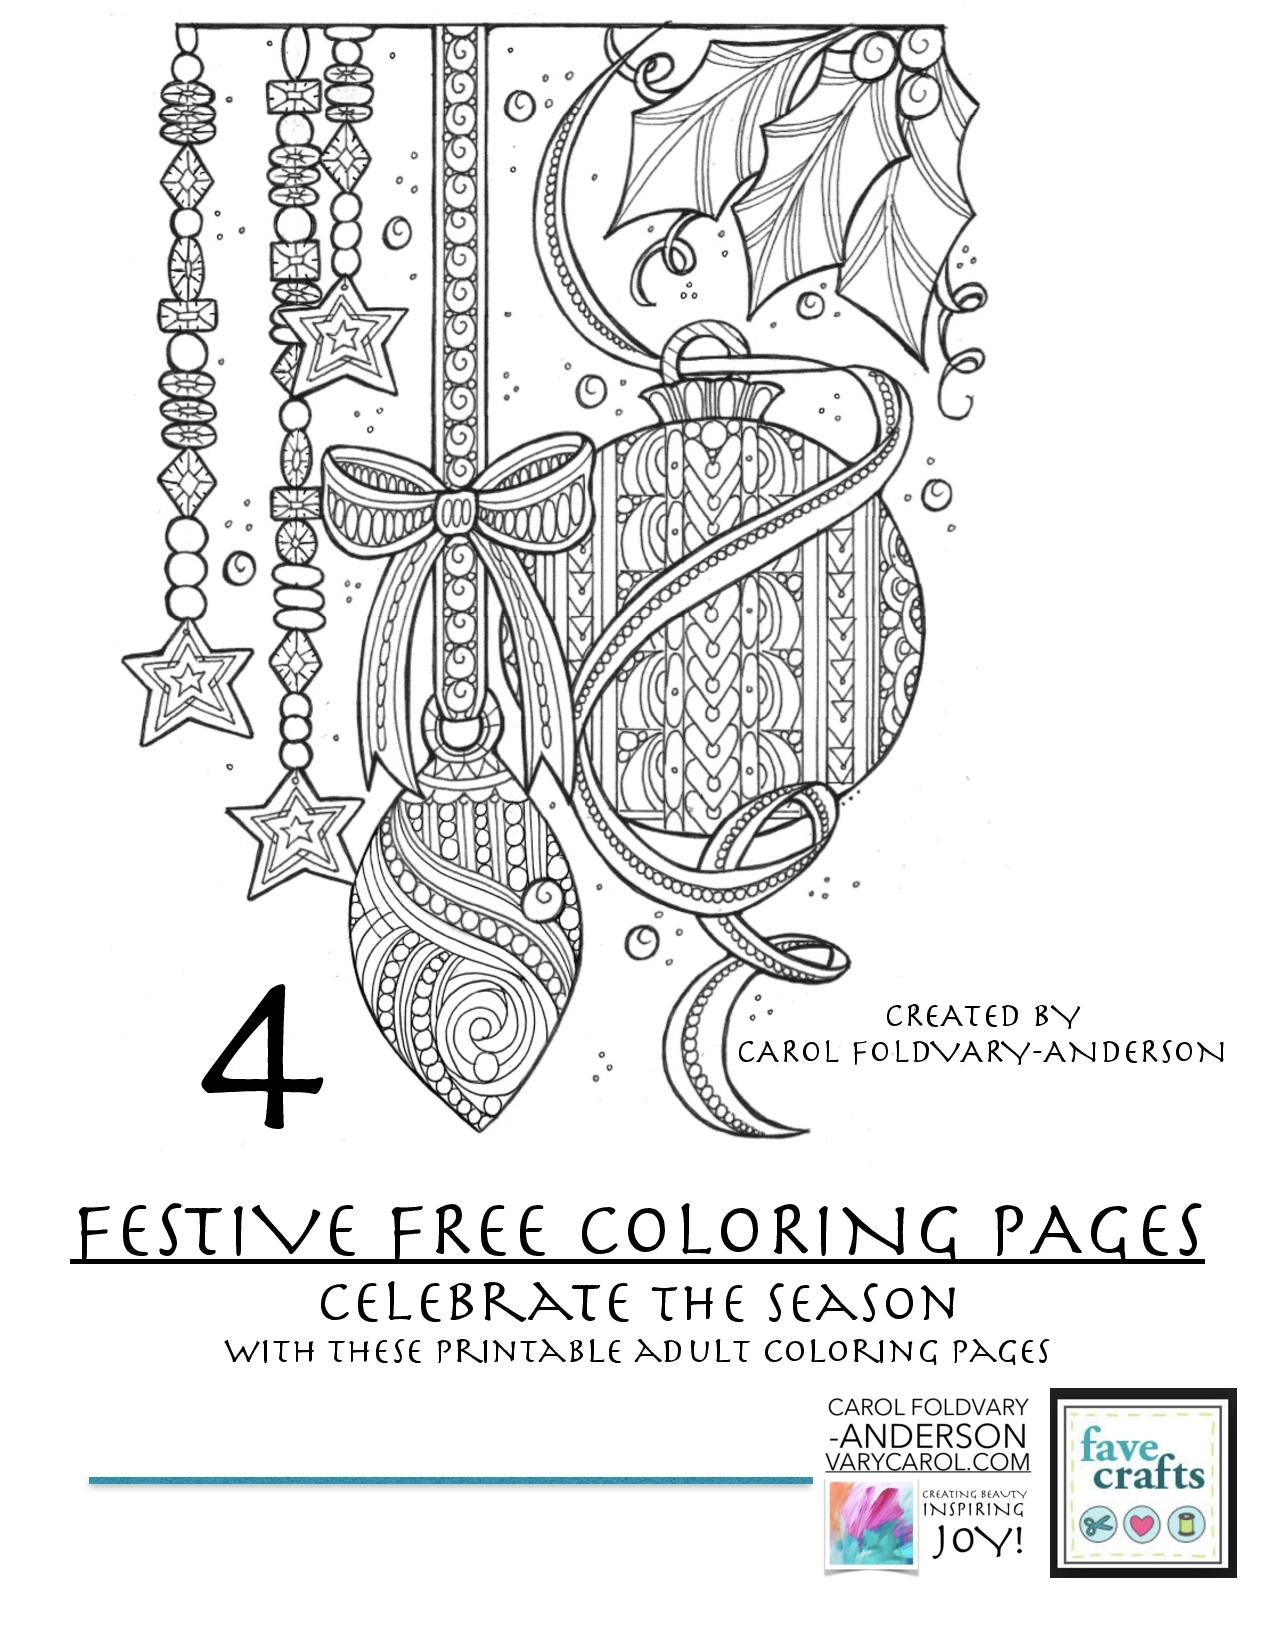 Christmas Coloring Pages With Instructions 4 Festive Free Holiday For Adults PDF